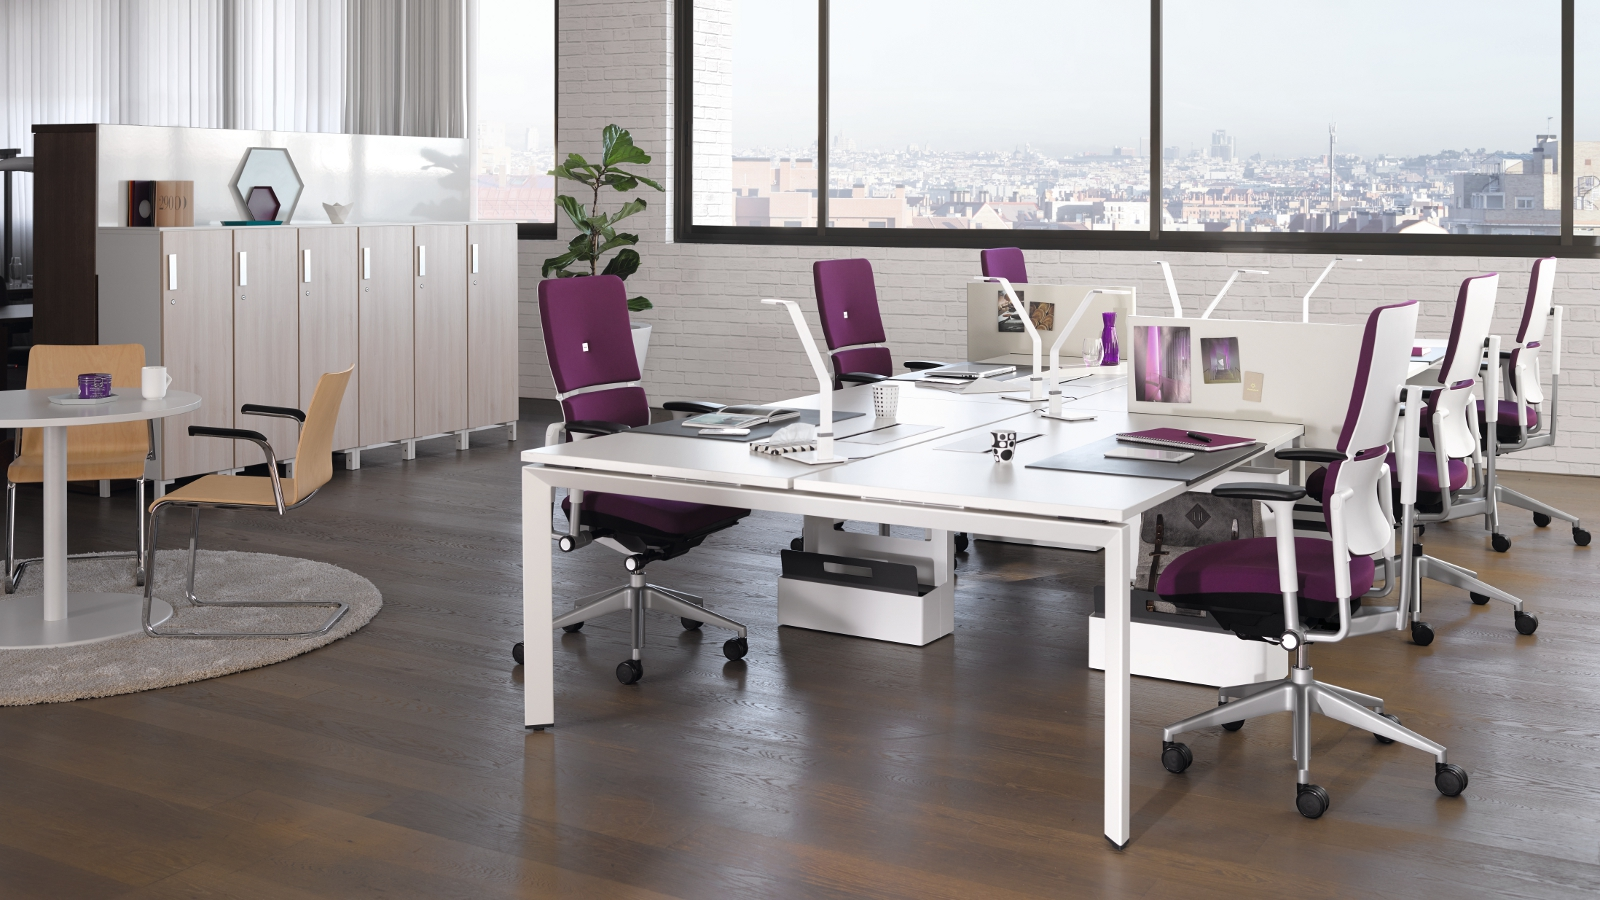 Mobilier professionnel tertia solutions for Mobilier professionnel